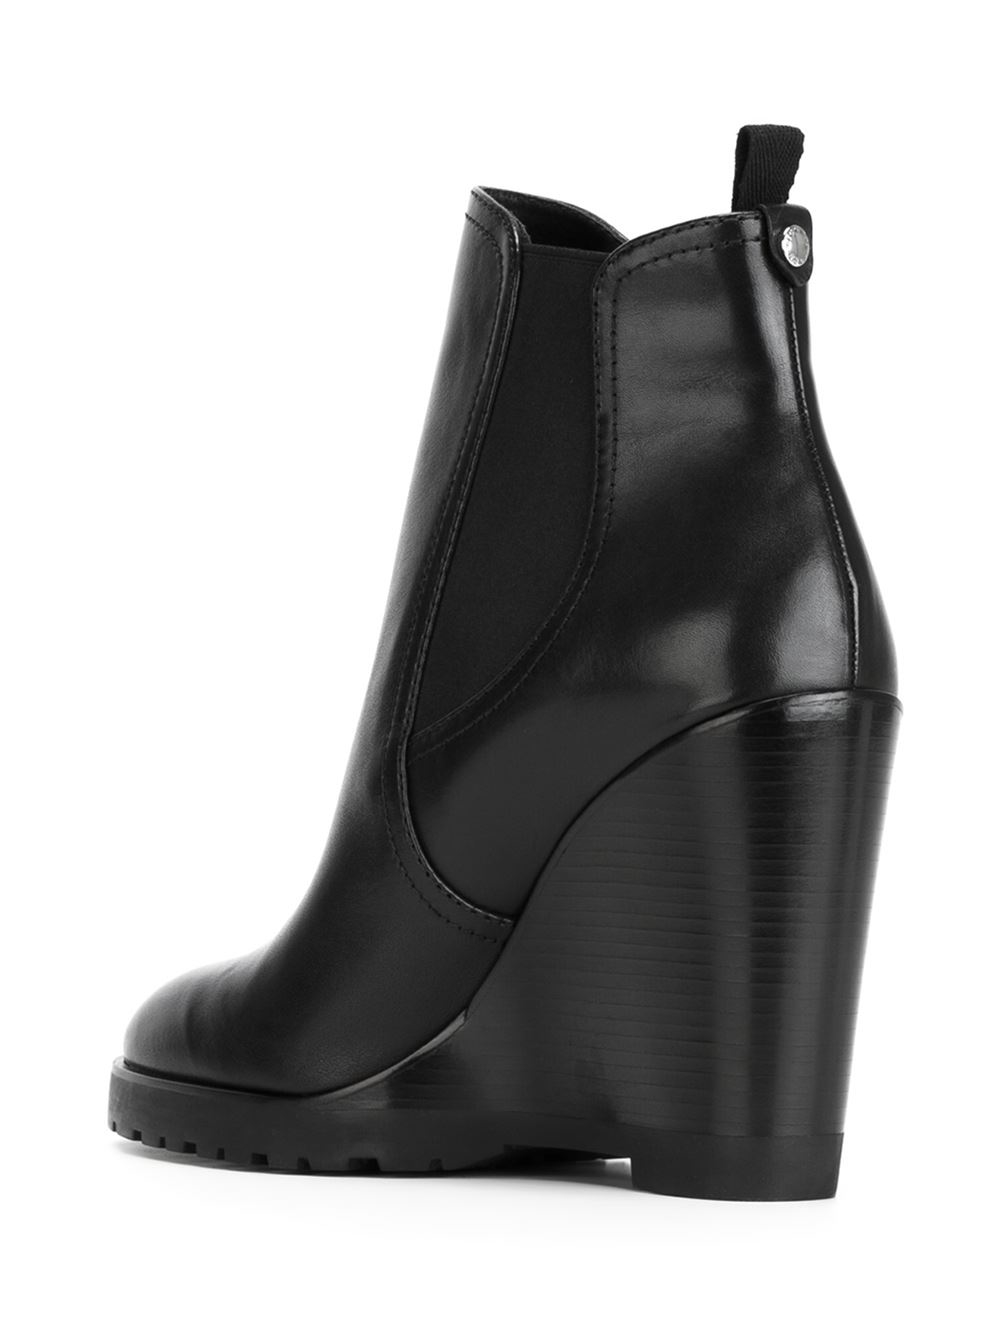 3505a76f0a6 Lyst - MICHAEL Michael Kors  thea  Boots in Black